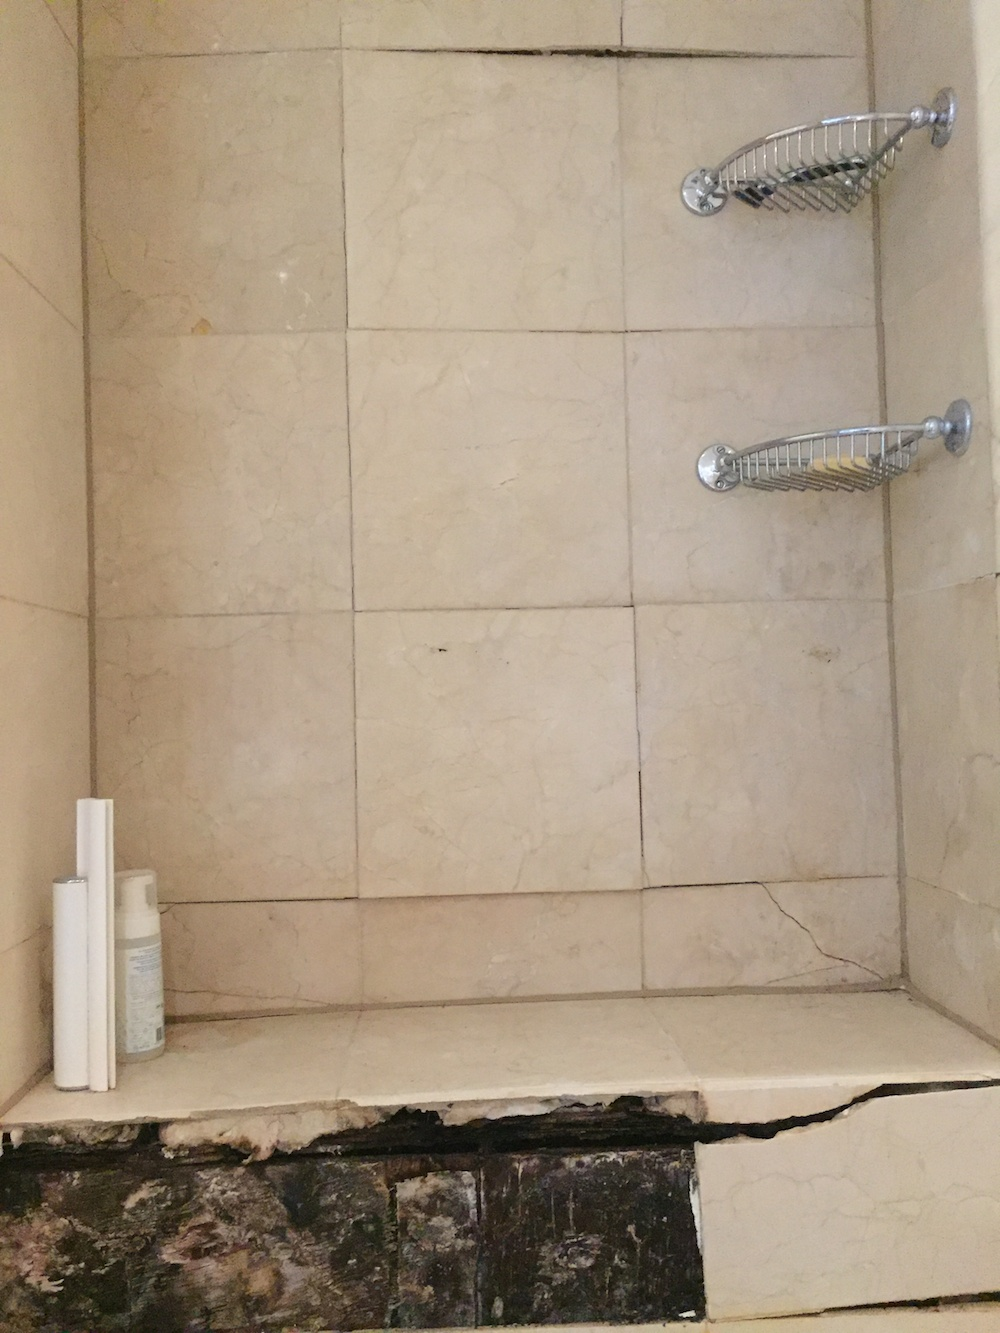 How to avoid tiling failures - seminar by Amarestone